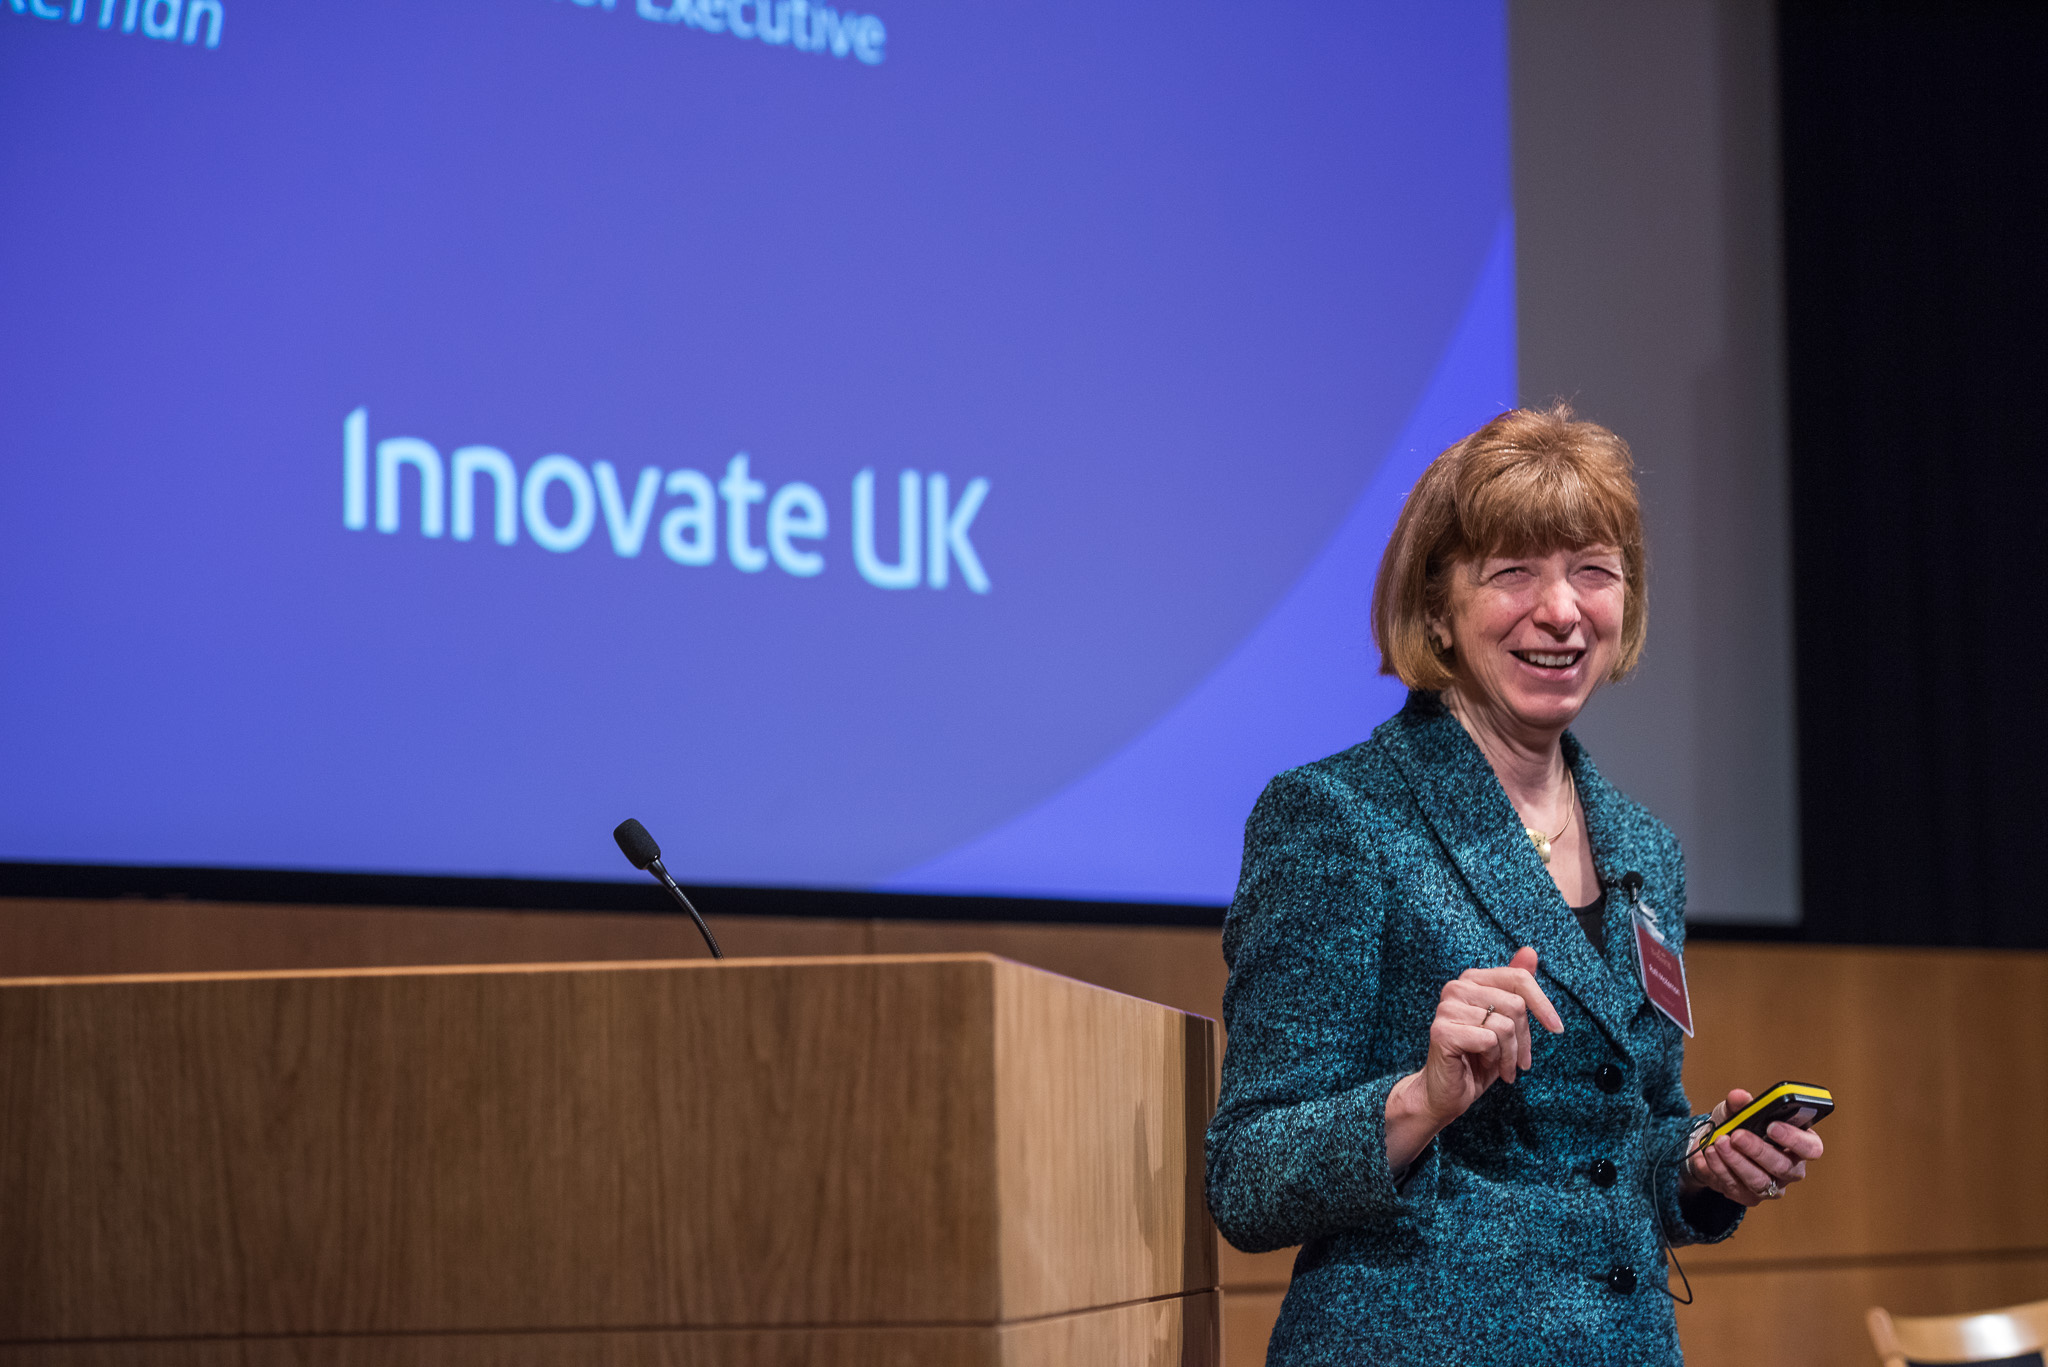 BioBeat15: Ruth McKernan, CEO of Innovate UK